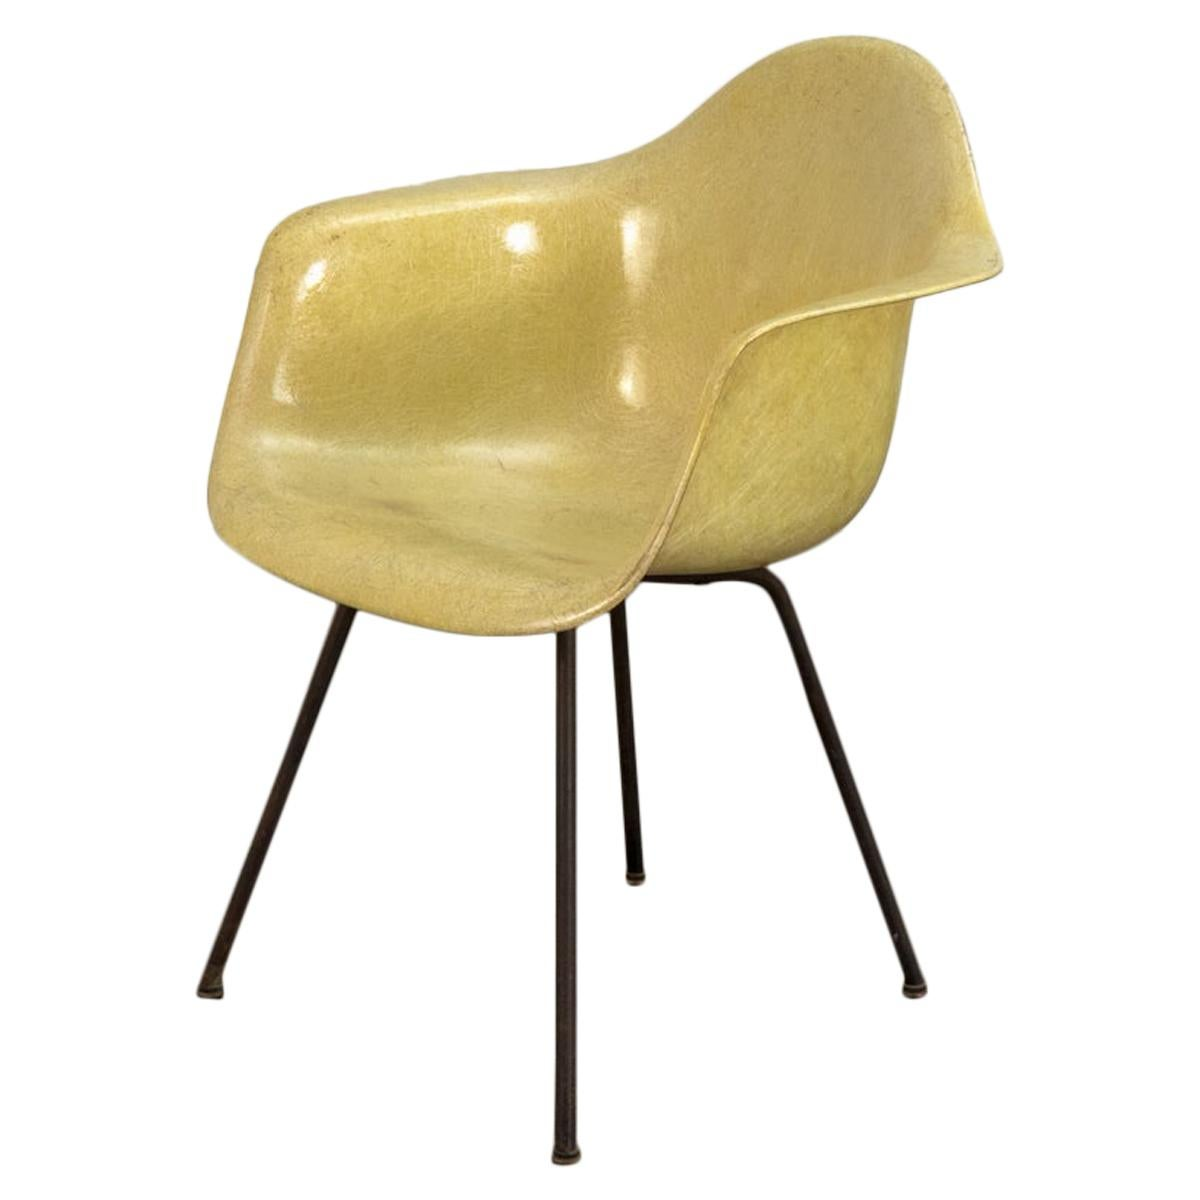 Canary Yellow Zenith Rope Edge Armchair by Eames